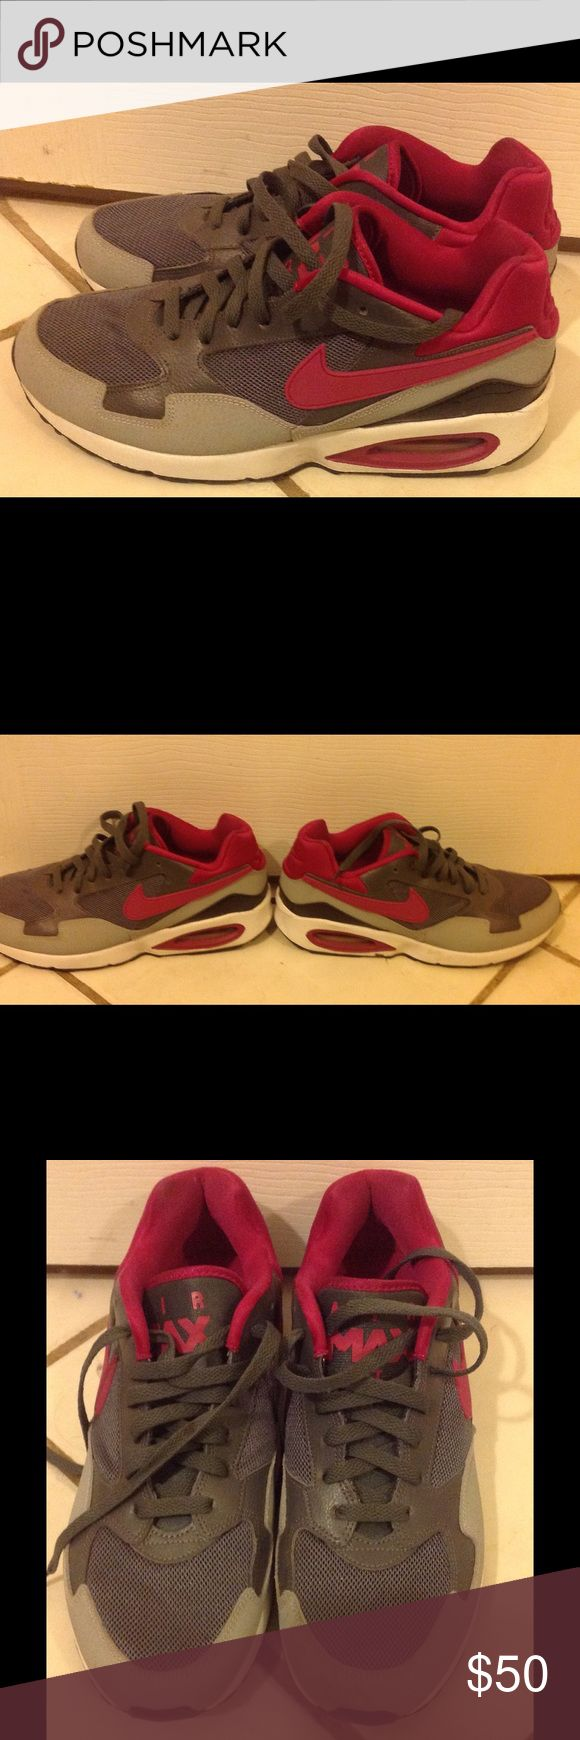 Nike Air Max Women's Nike Air max size 9.5. Only worn a couple of times. Still in EUC. No box Nike Shoes Athletic Shoes